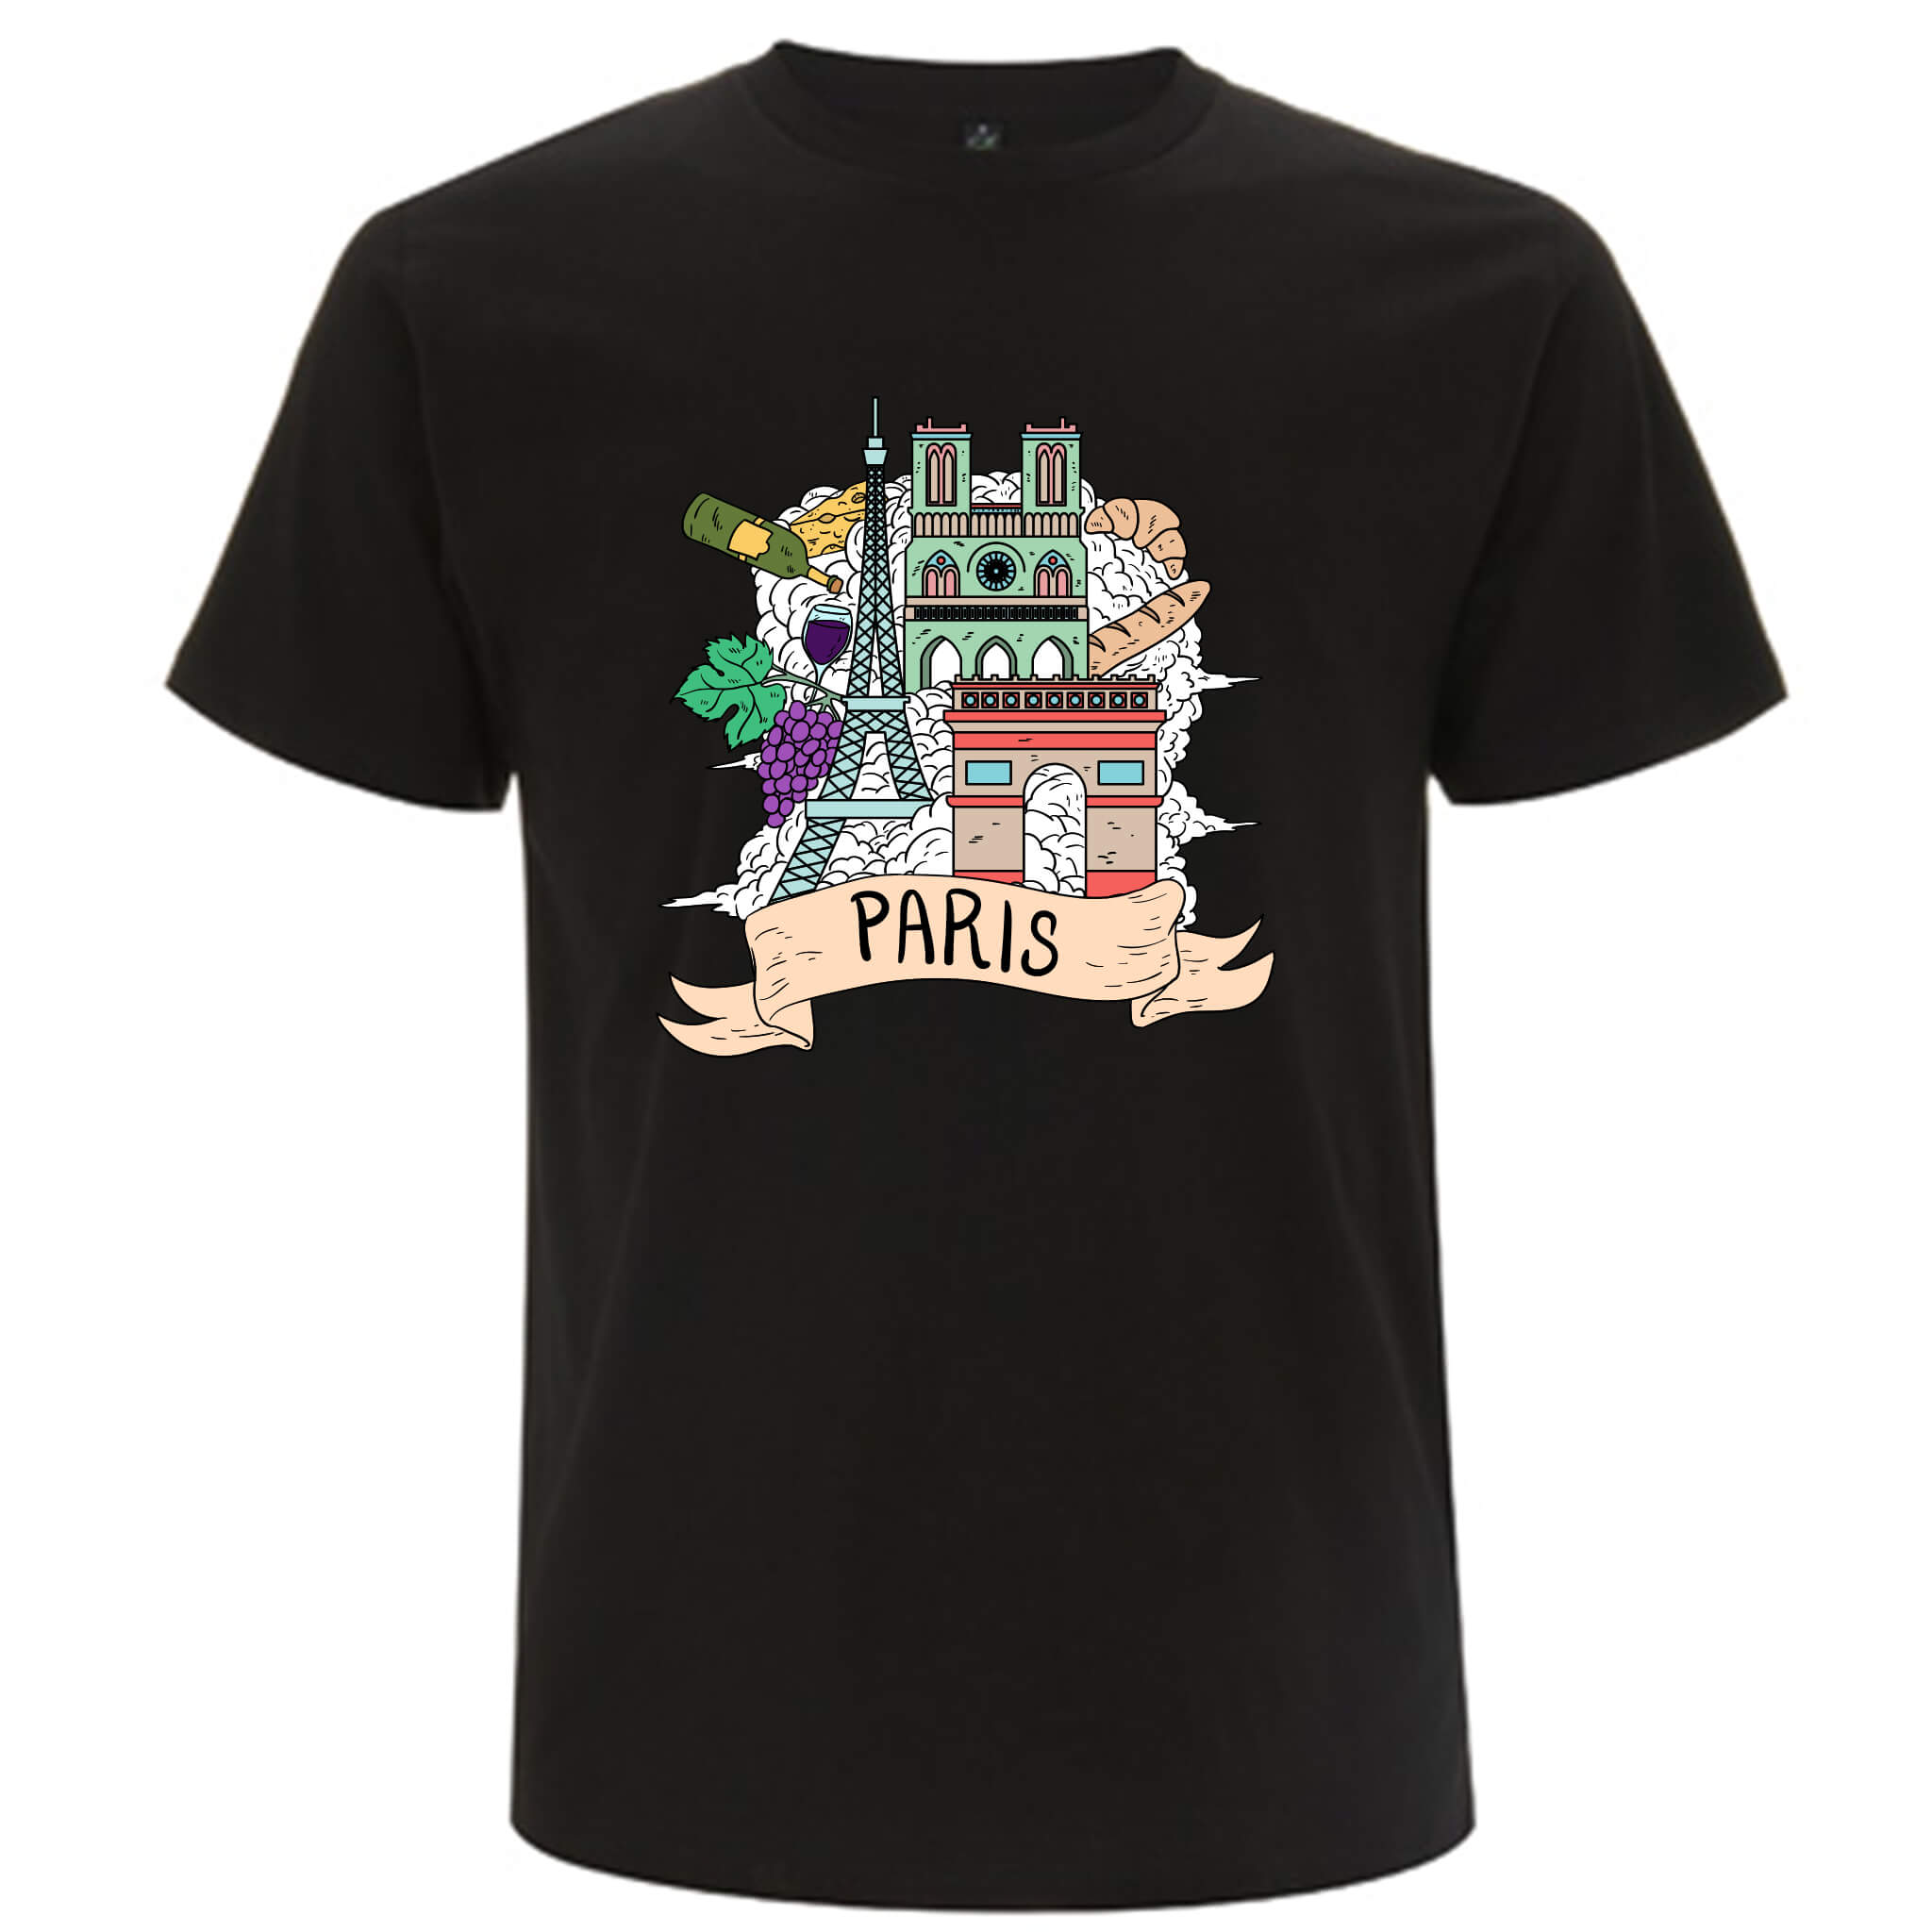 Località: Parigi - T-shirt Uomo - T-Shirt by Fol The Brand